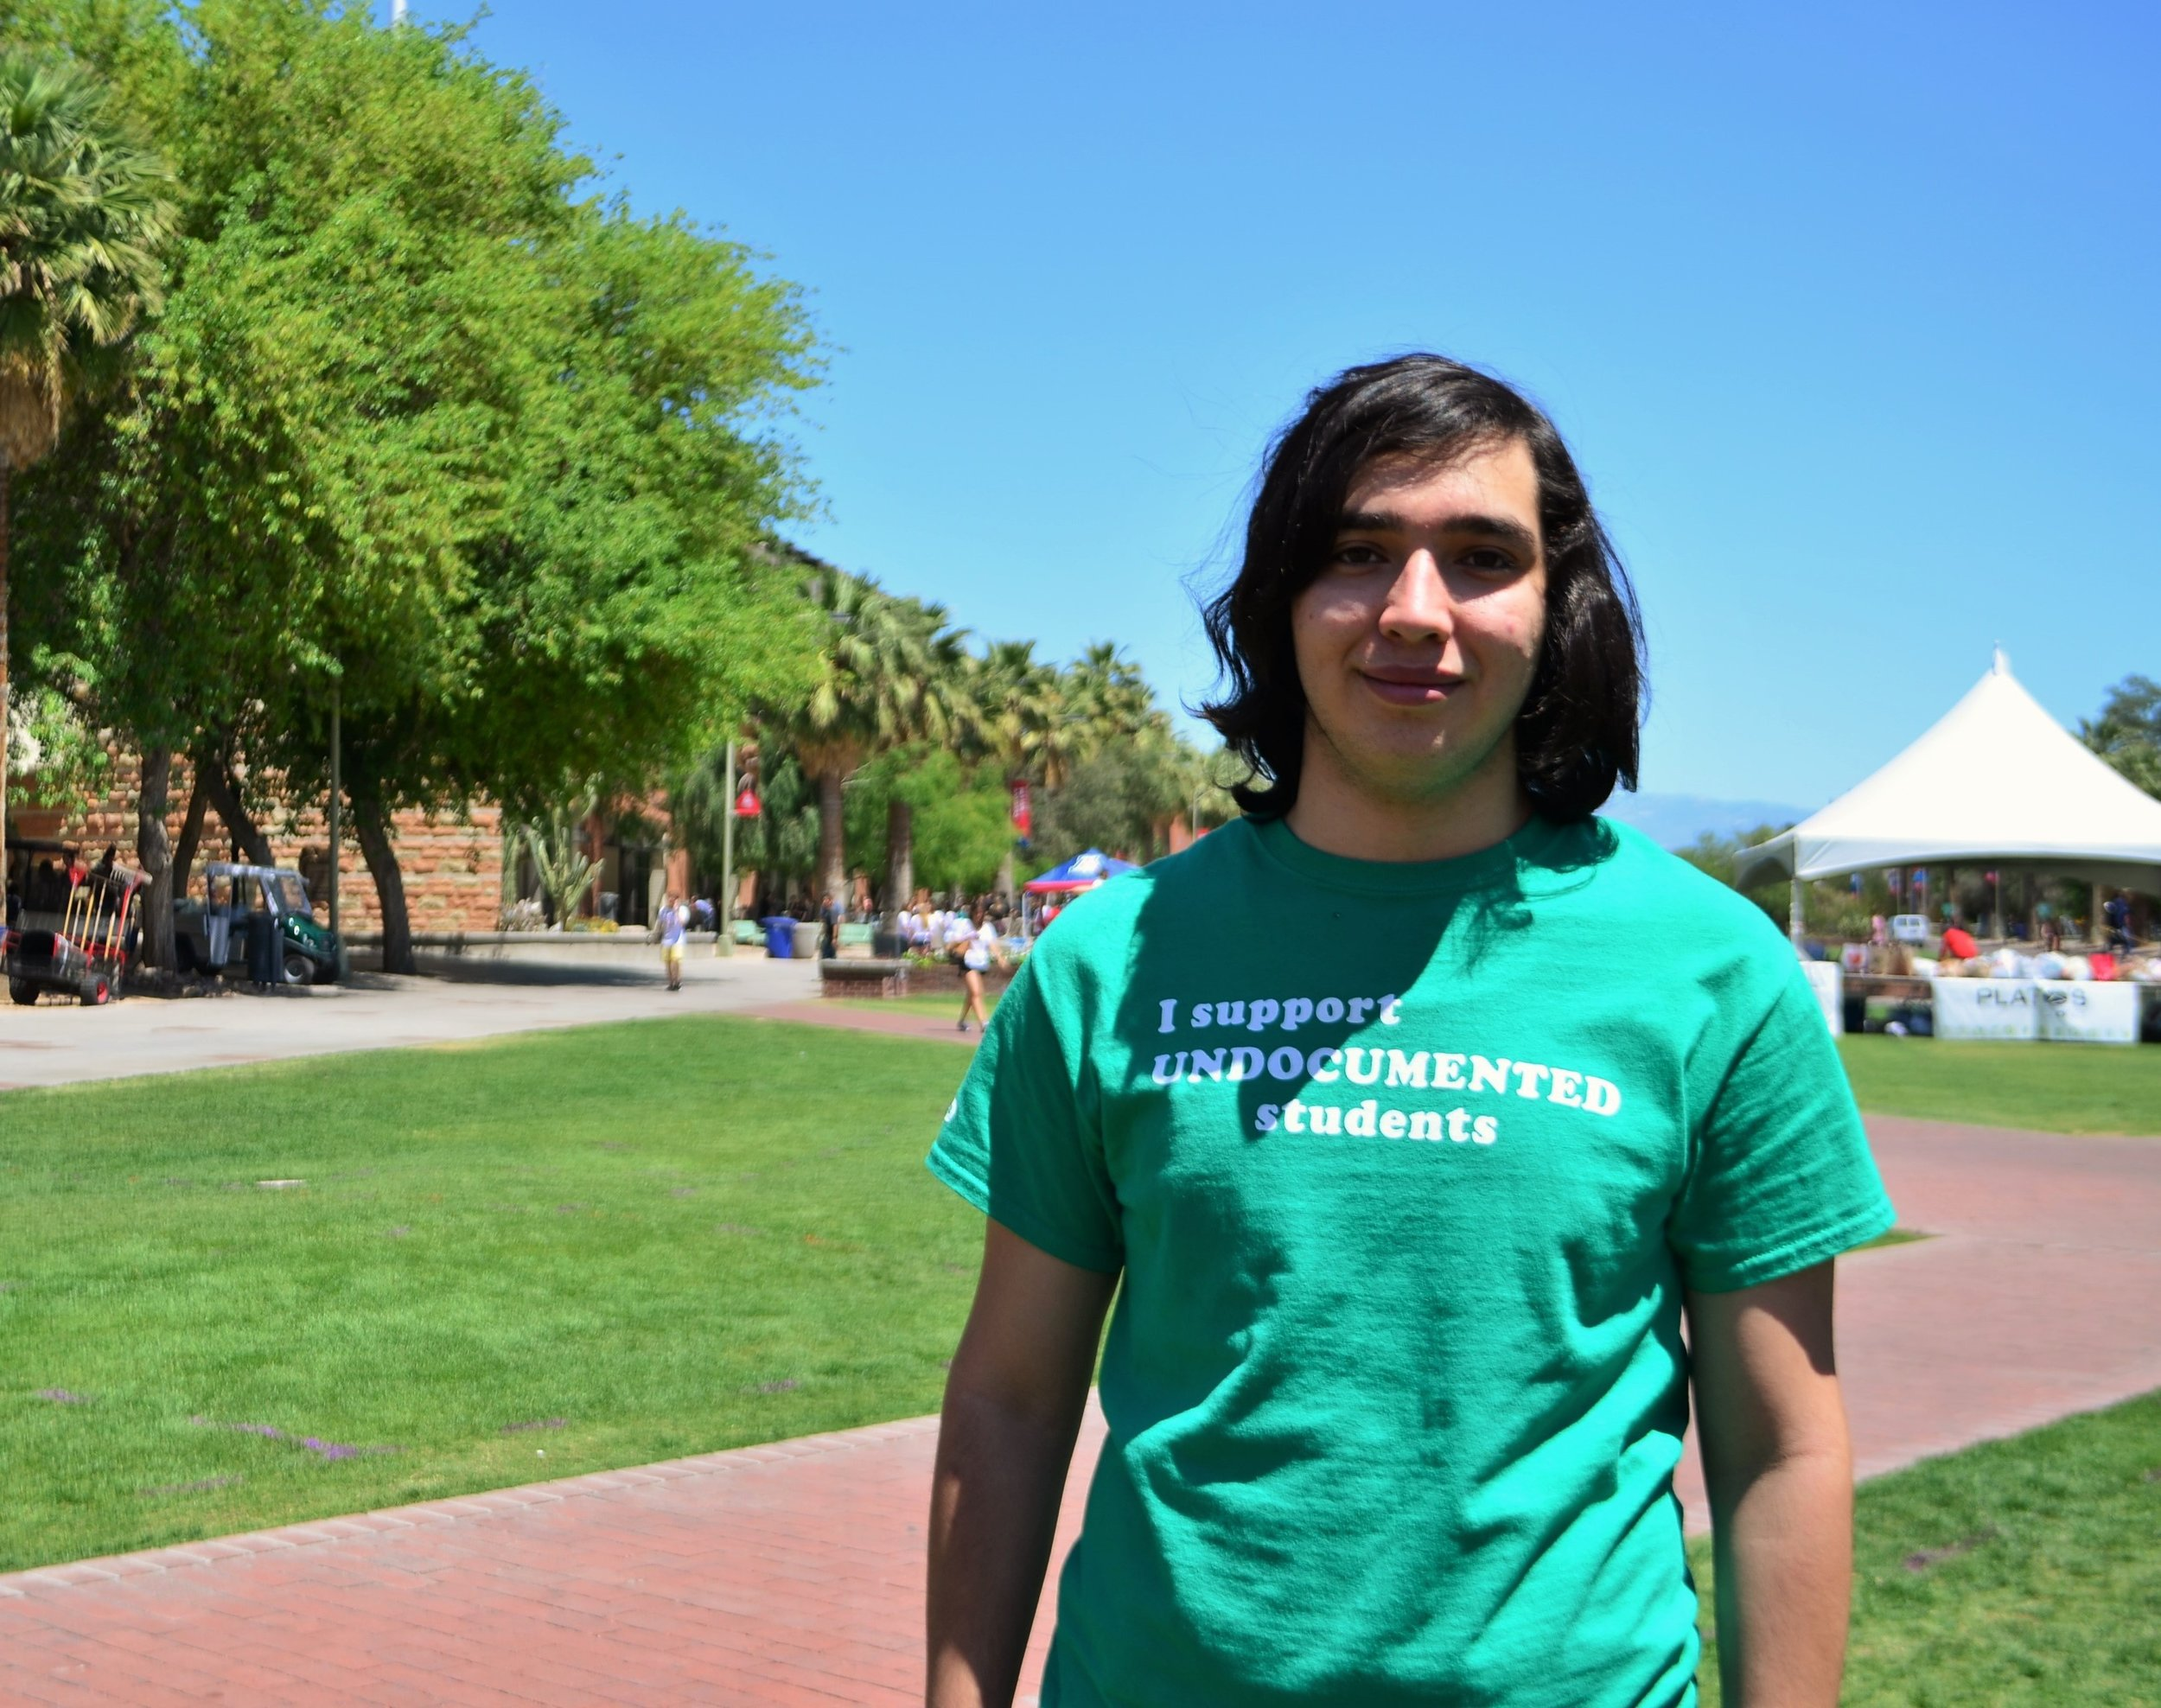 Dario Andrade Mendoza protesting at the University of Arizona. He and other undocumented students demanded in-state tuition as long-time residents of Arizona.